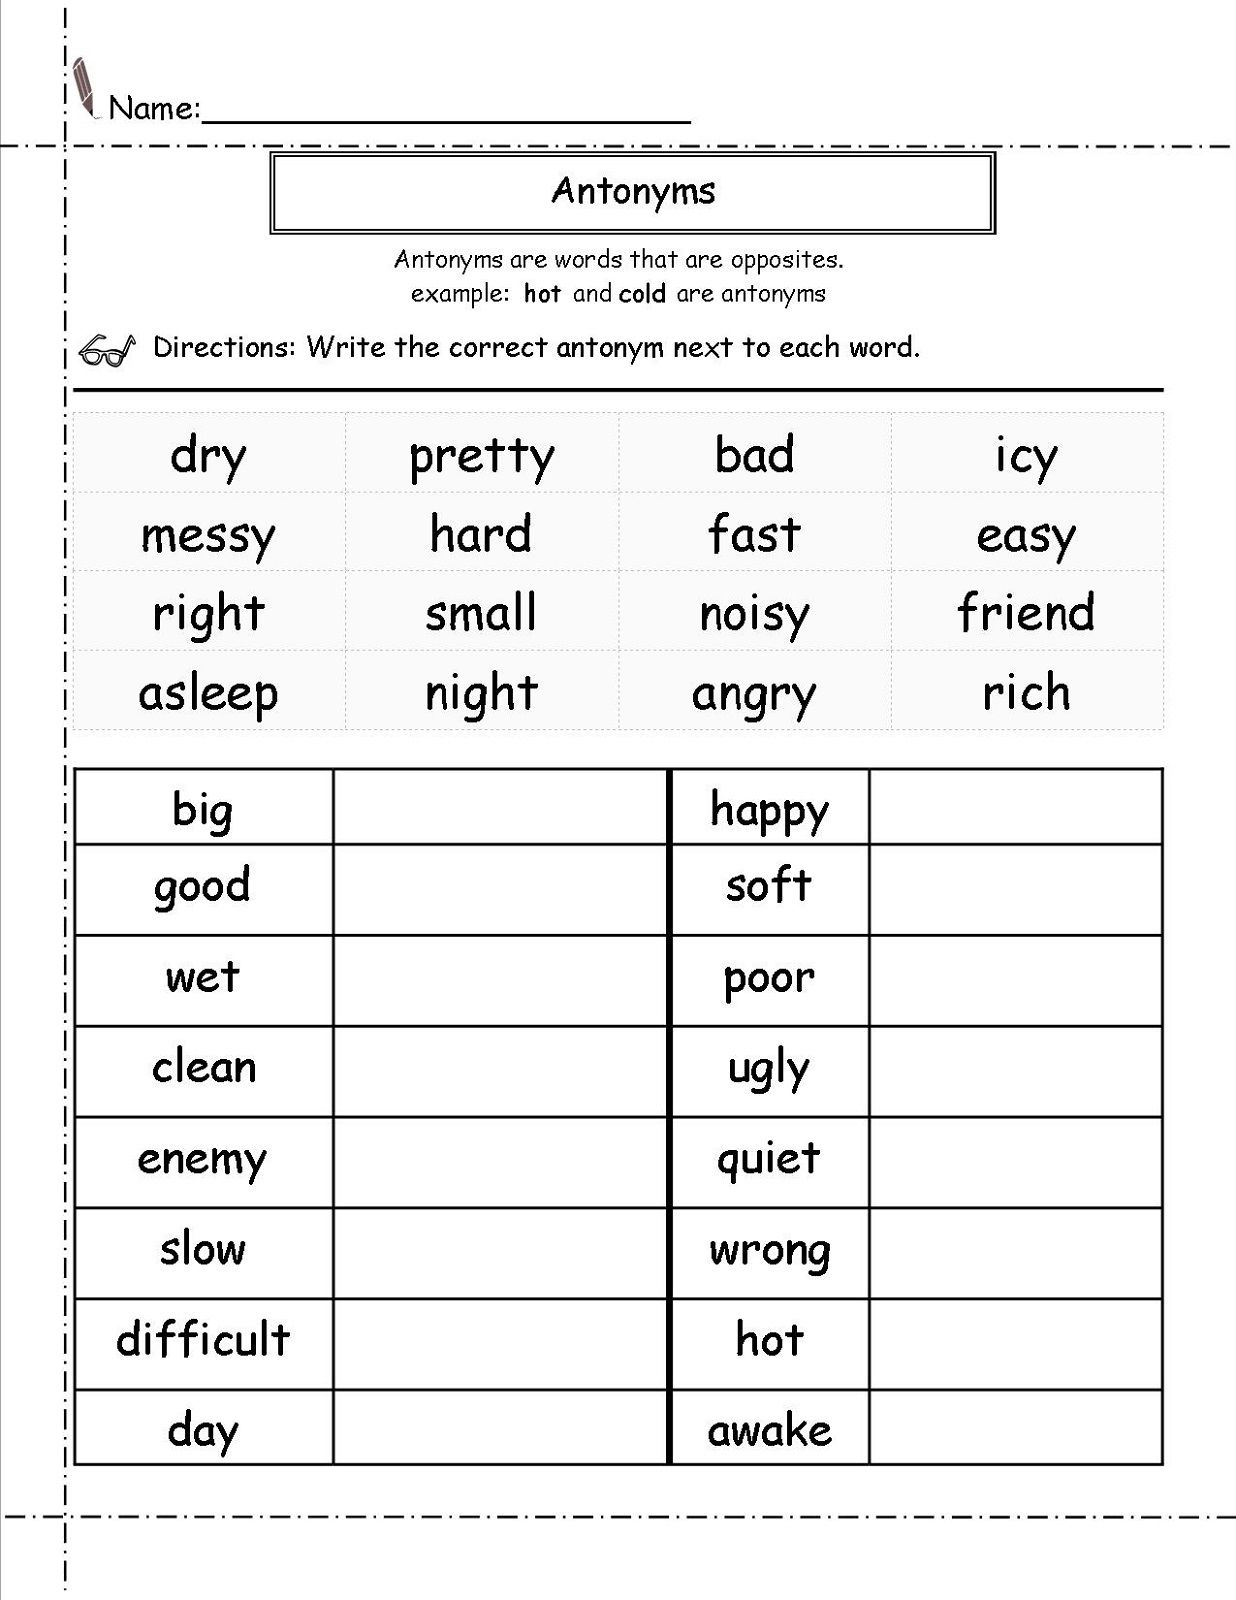 Printable 2nd Grade Worksheets For Students 2nd Grade Reading Worksheets 2nd Grade Math Worksheets 2nd Grade Worksheets